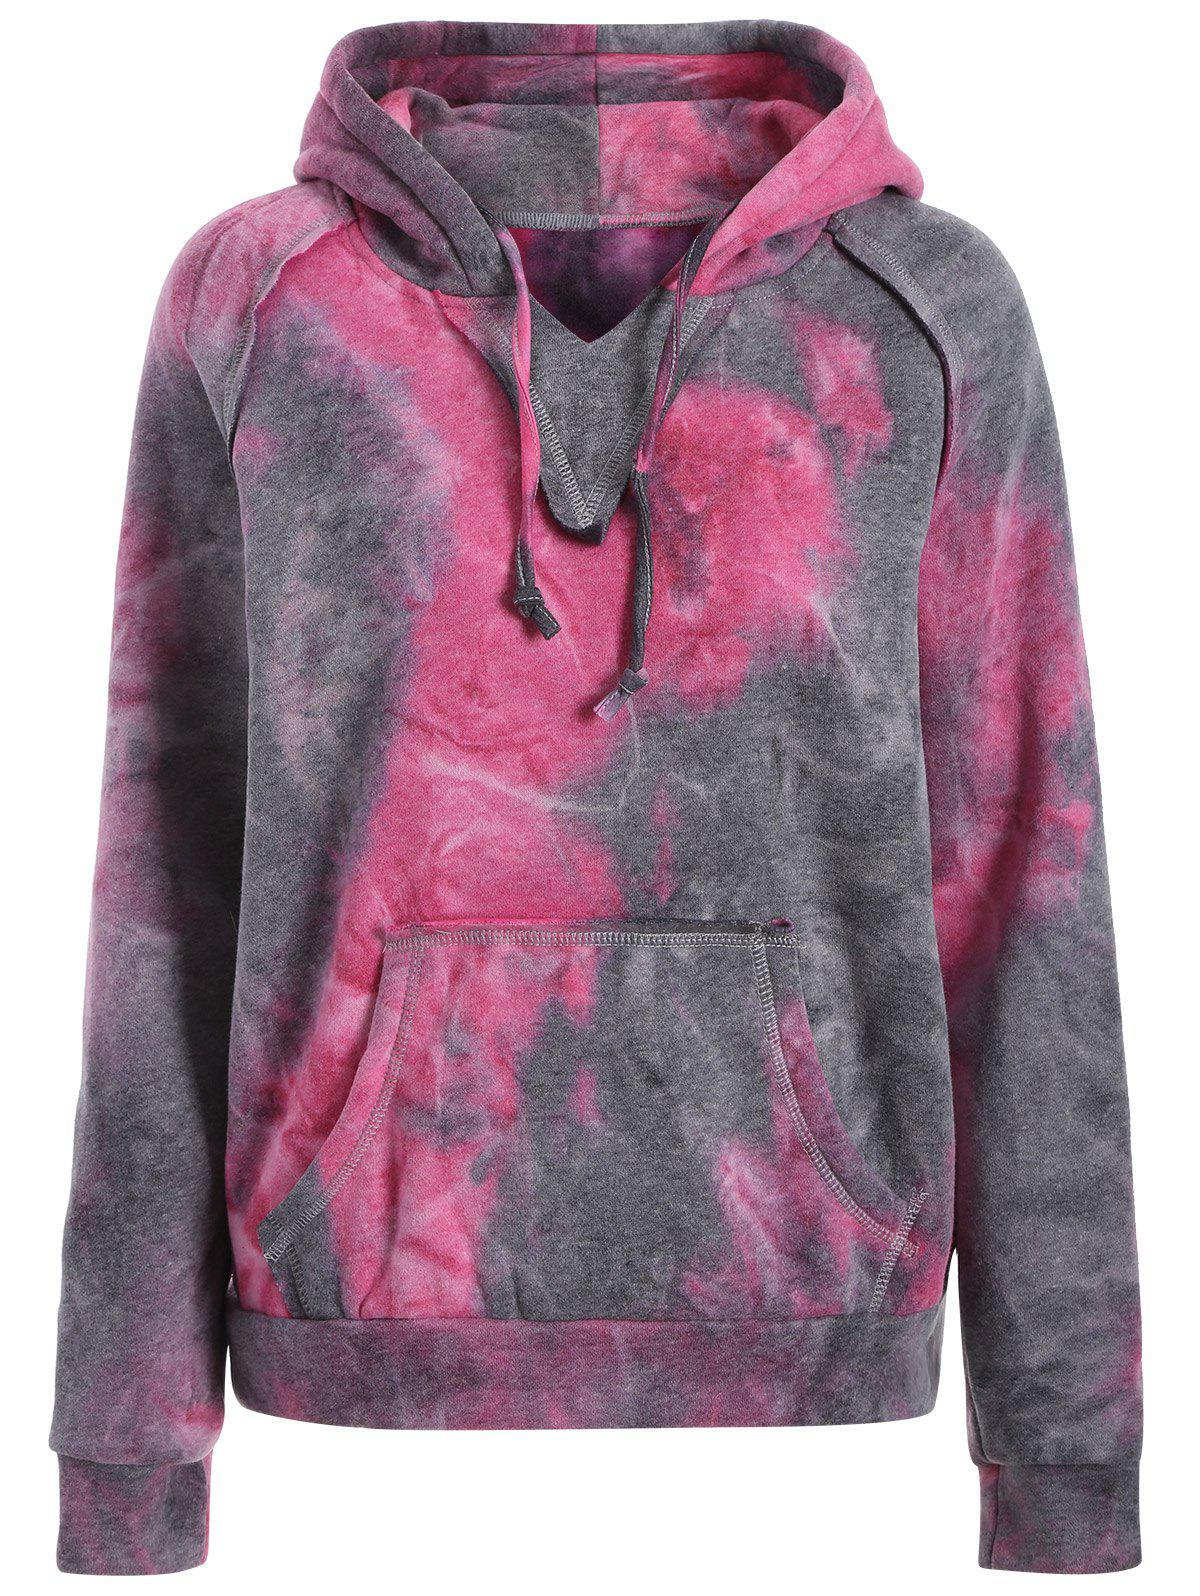 2018 sweat capuche su d en fausse peau de mouton effet tie dye pourpre xl in sweat shirts. Black Bedroom Furniture Sets. Home Design Ideas